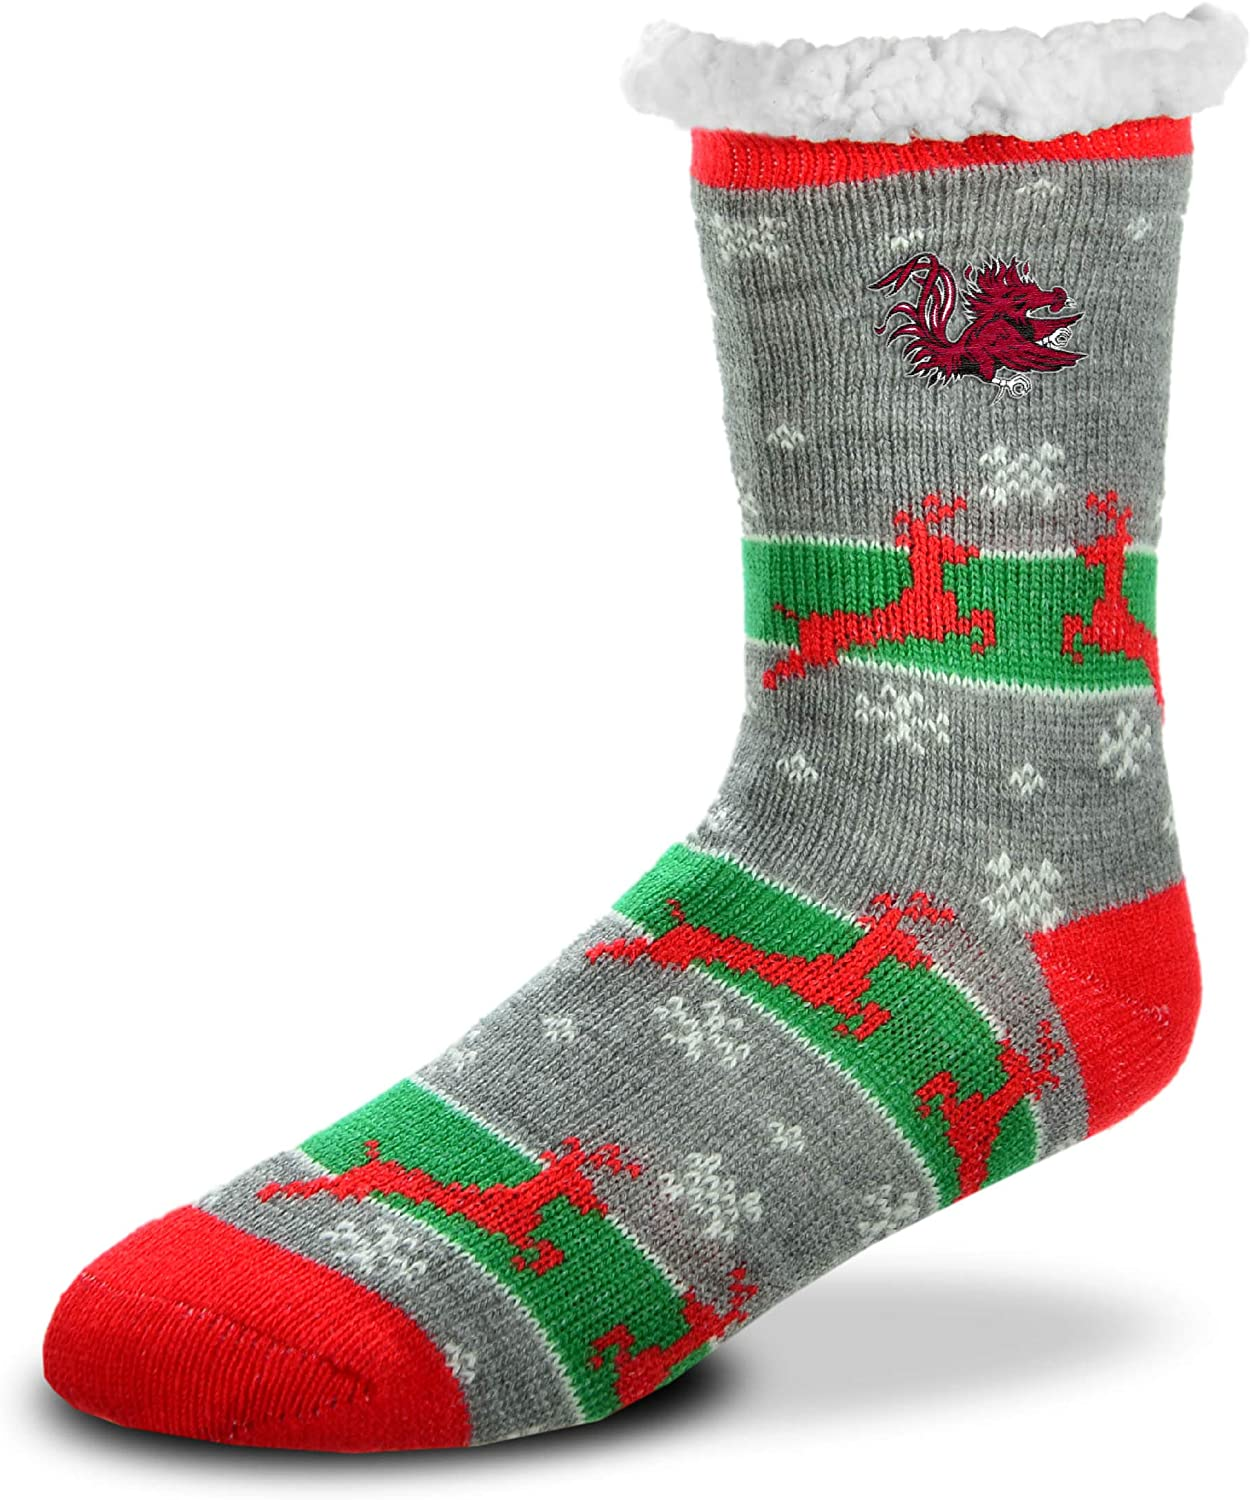 For Bare Feet - NCAA Sherpa Slipper Socks - One Size Fits Most